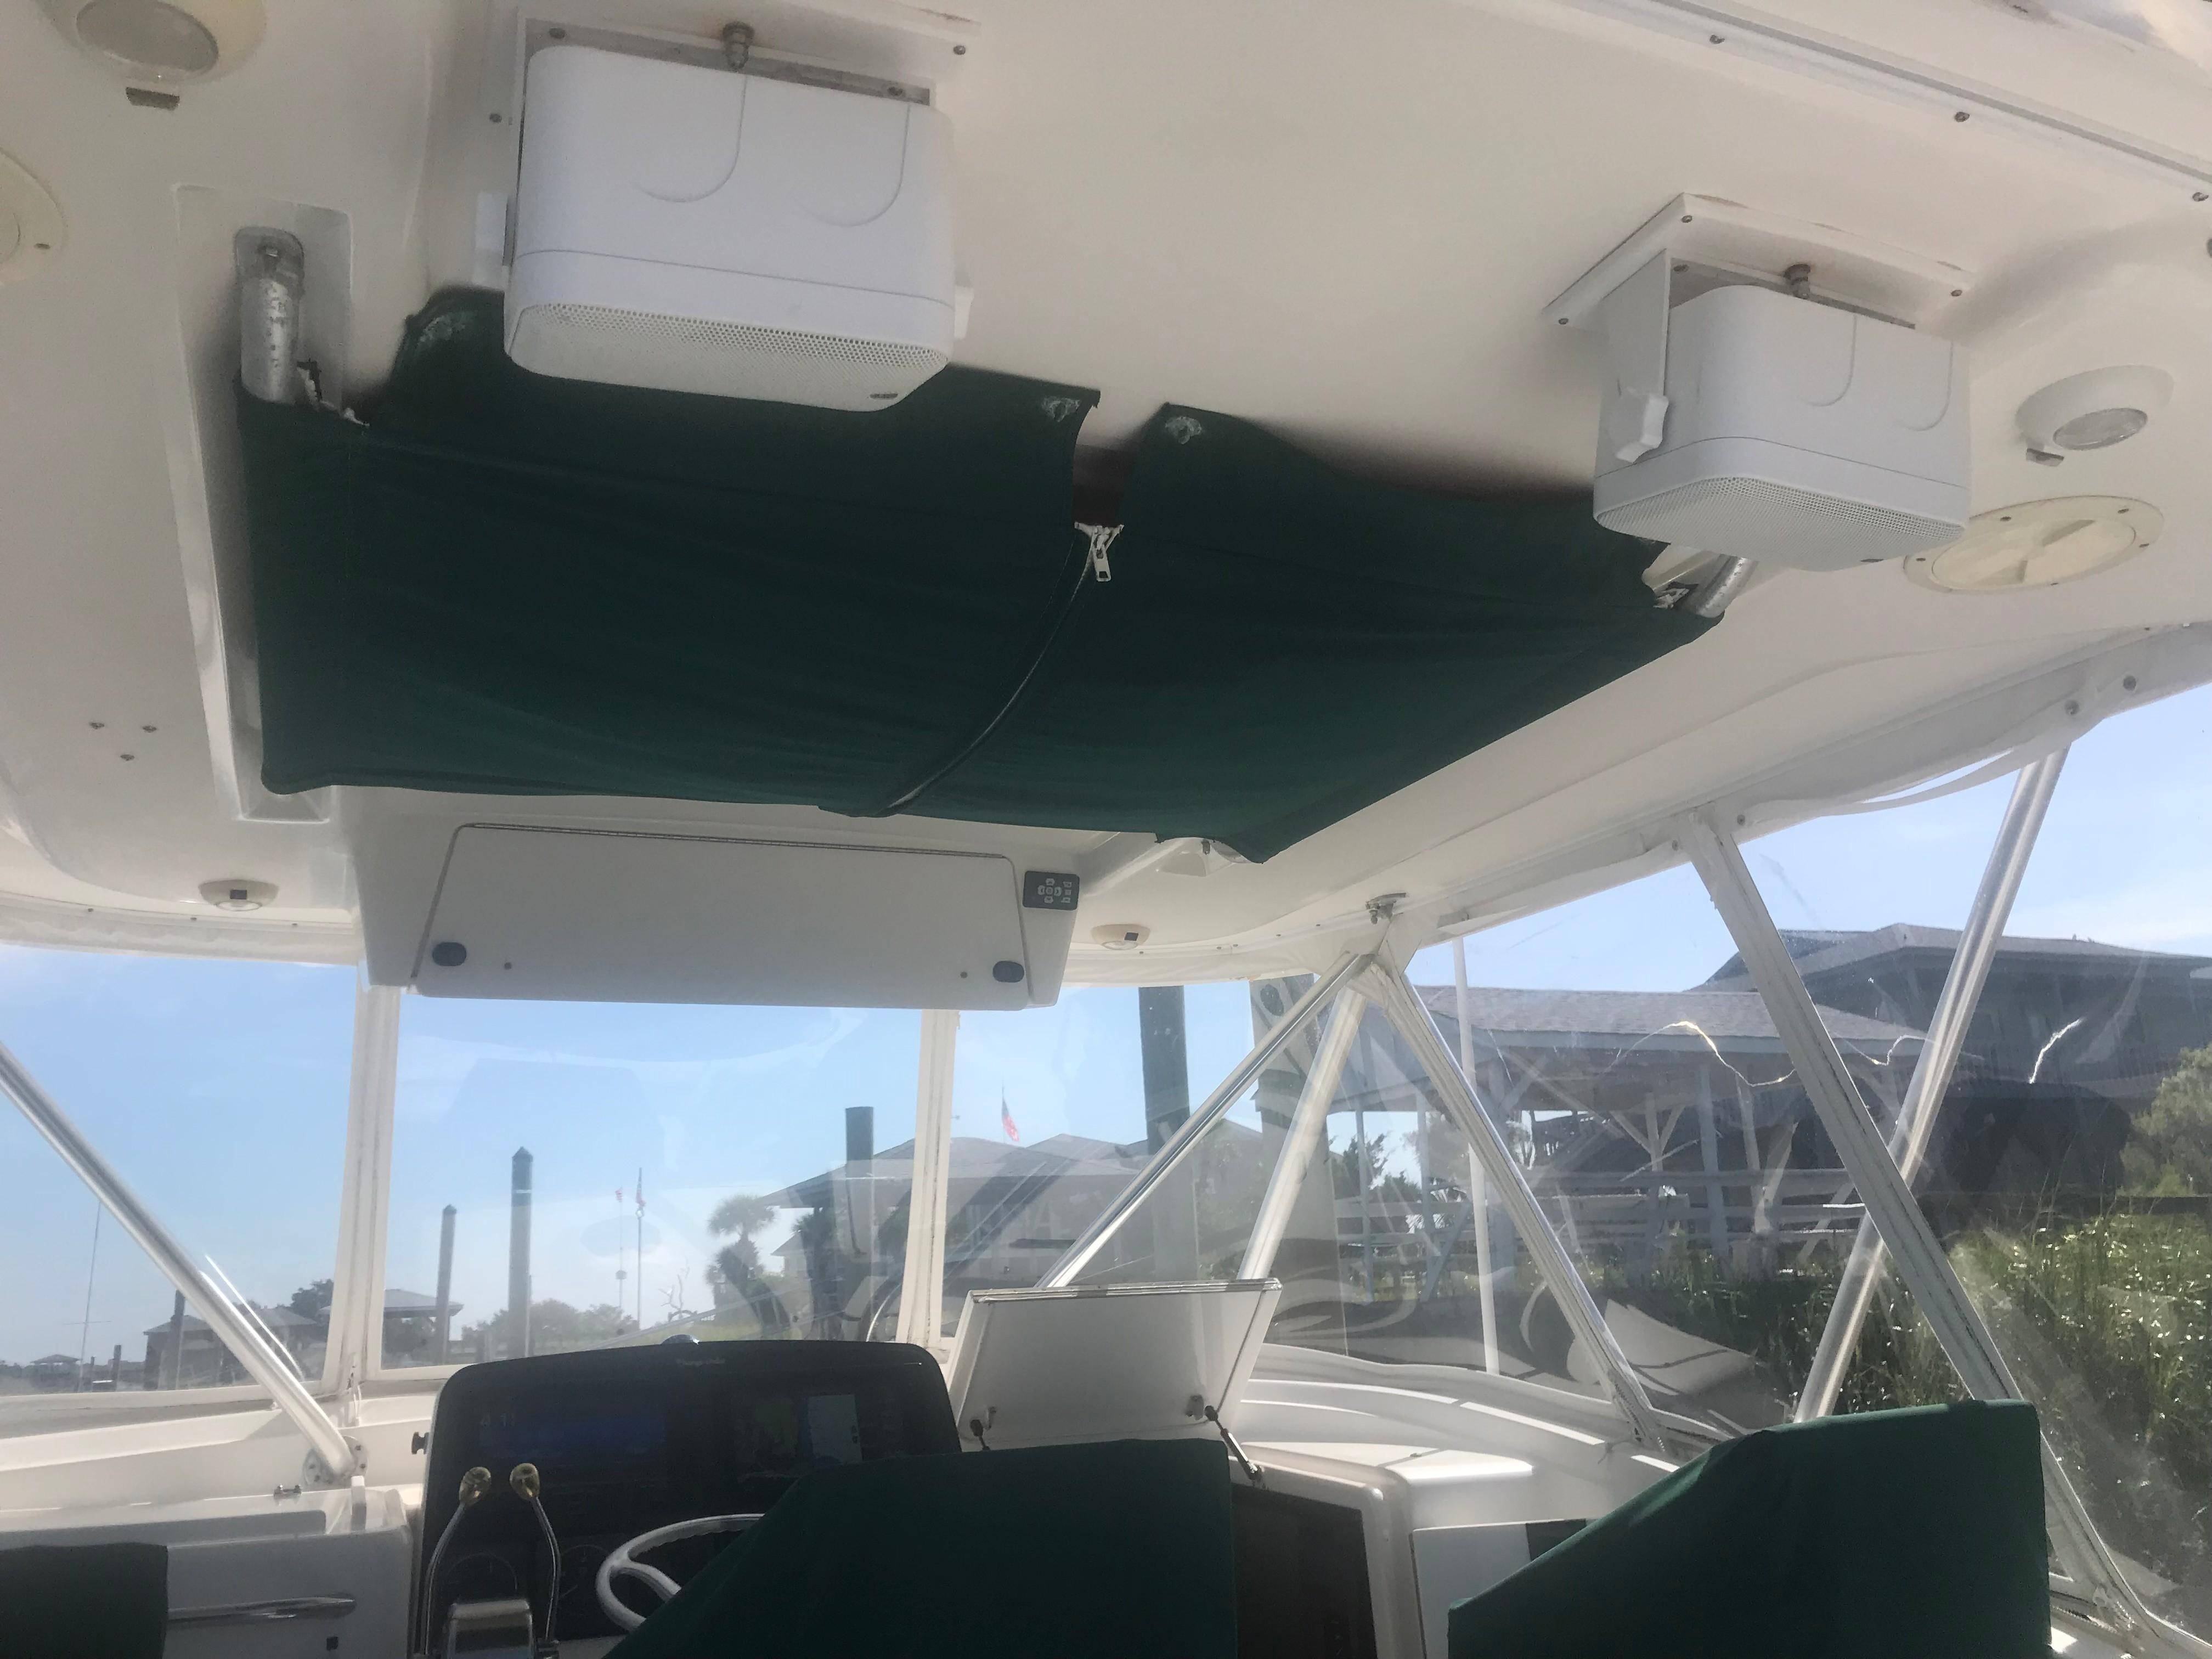 Pursuit 3000 Offshore - PFD storage/Stereo Speakers